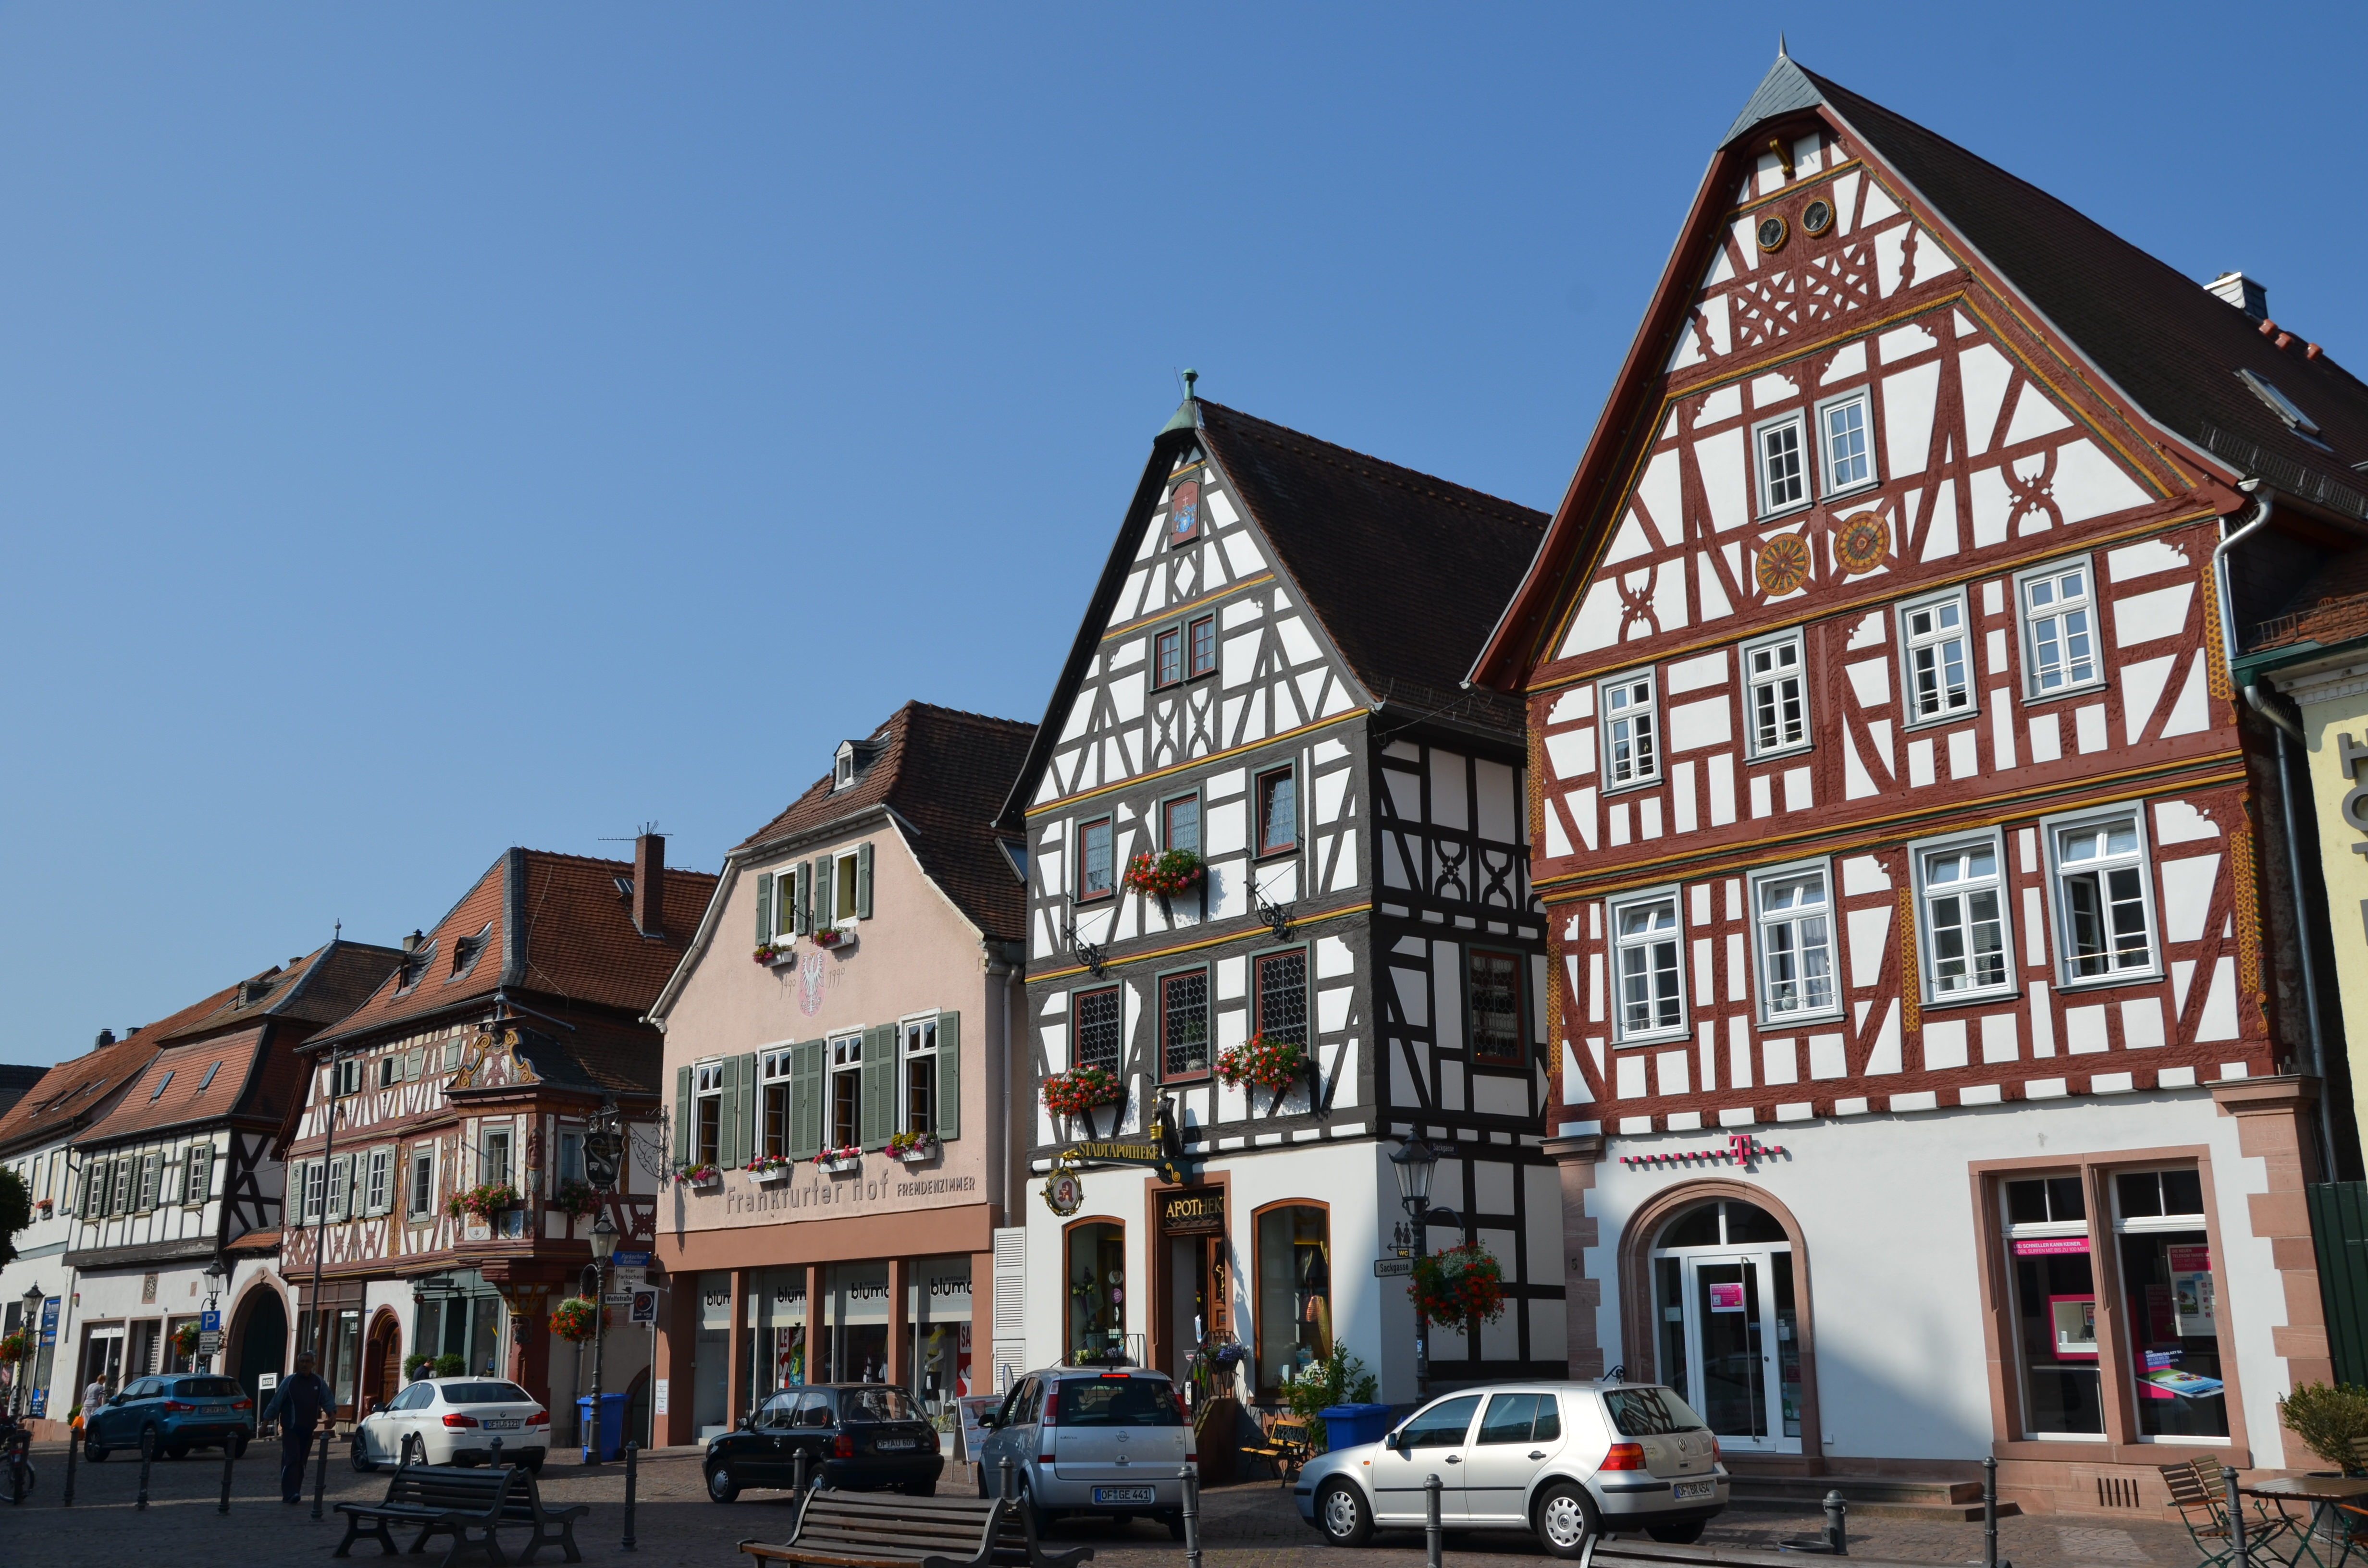 Beautiful half-timbered buildings enhance the town of Seligenstadt